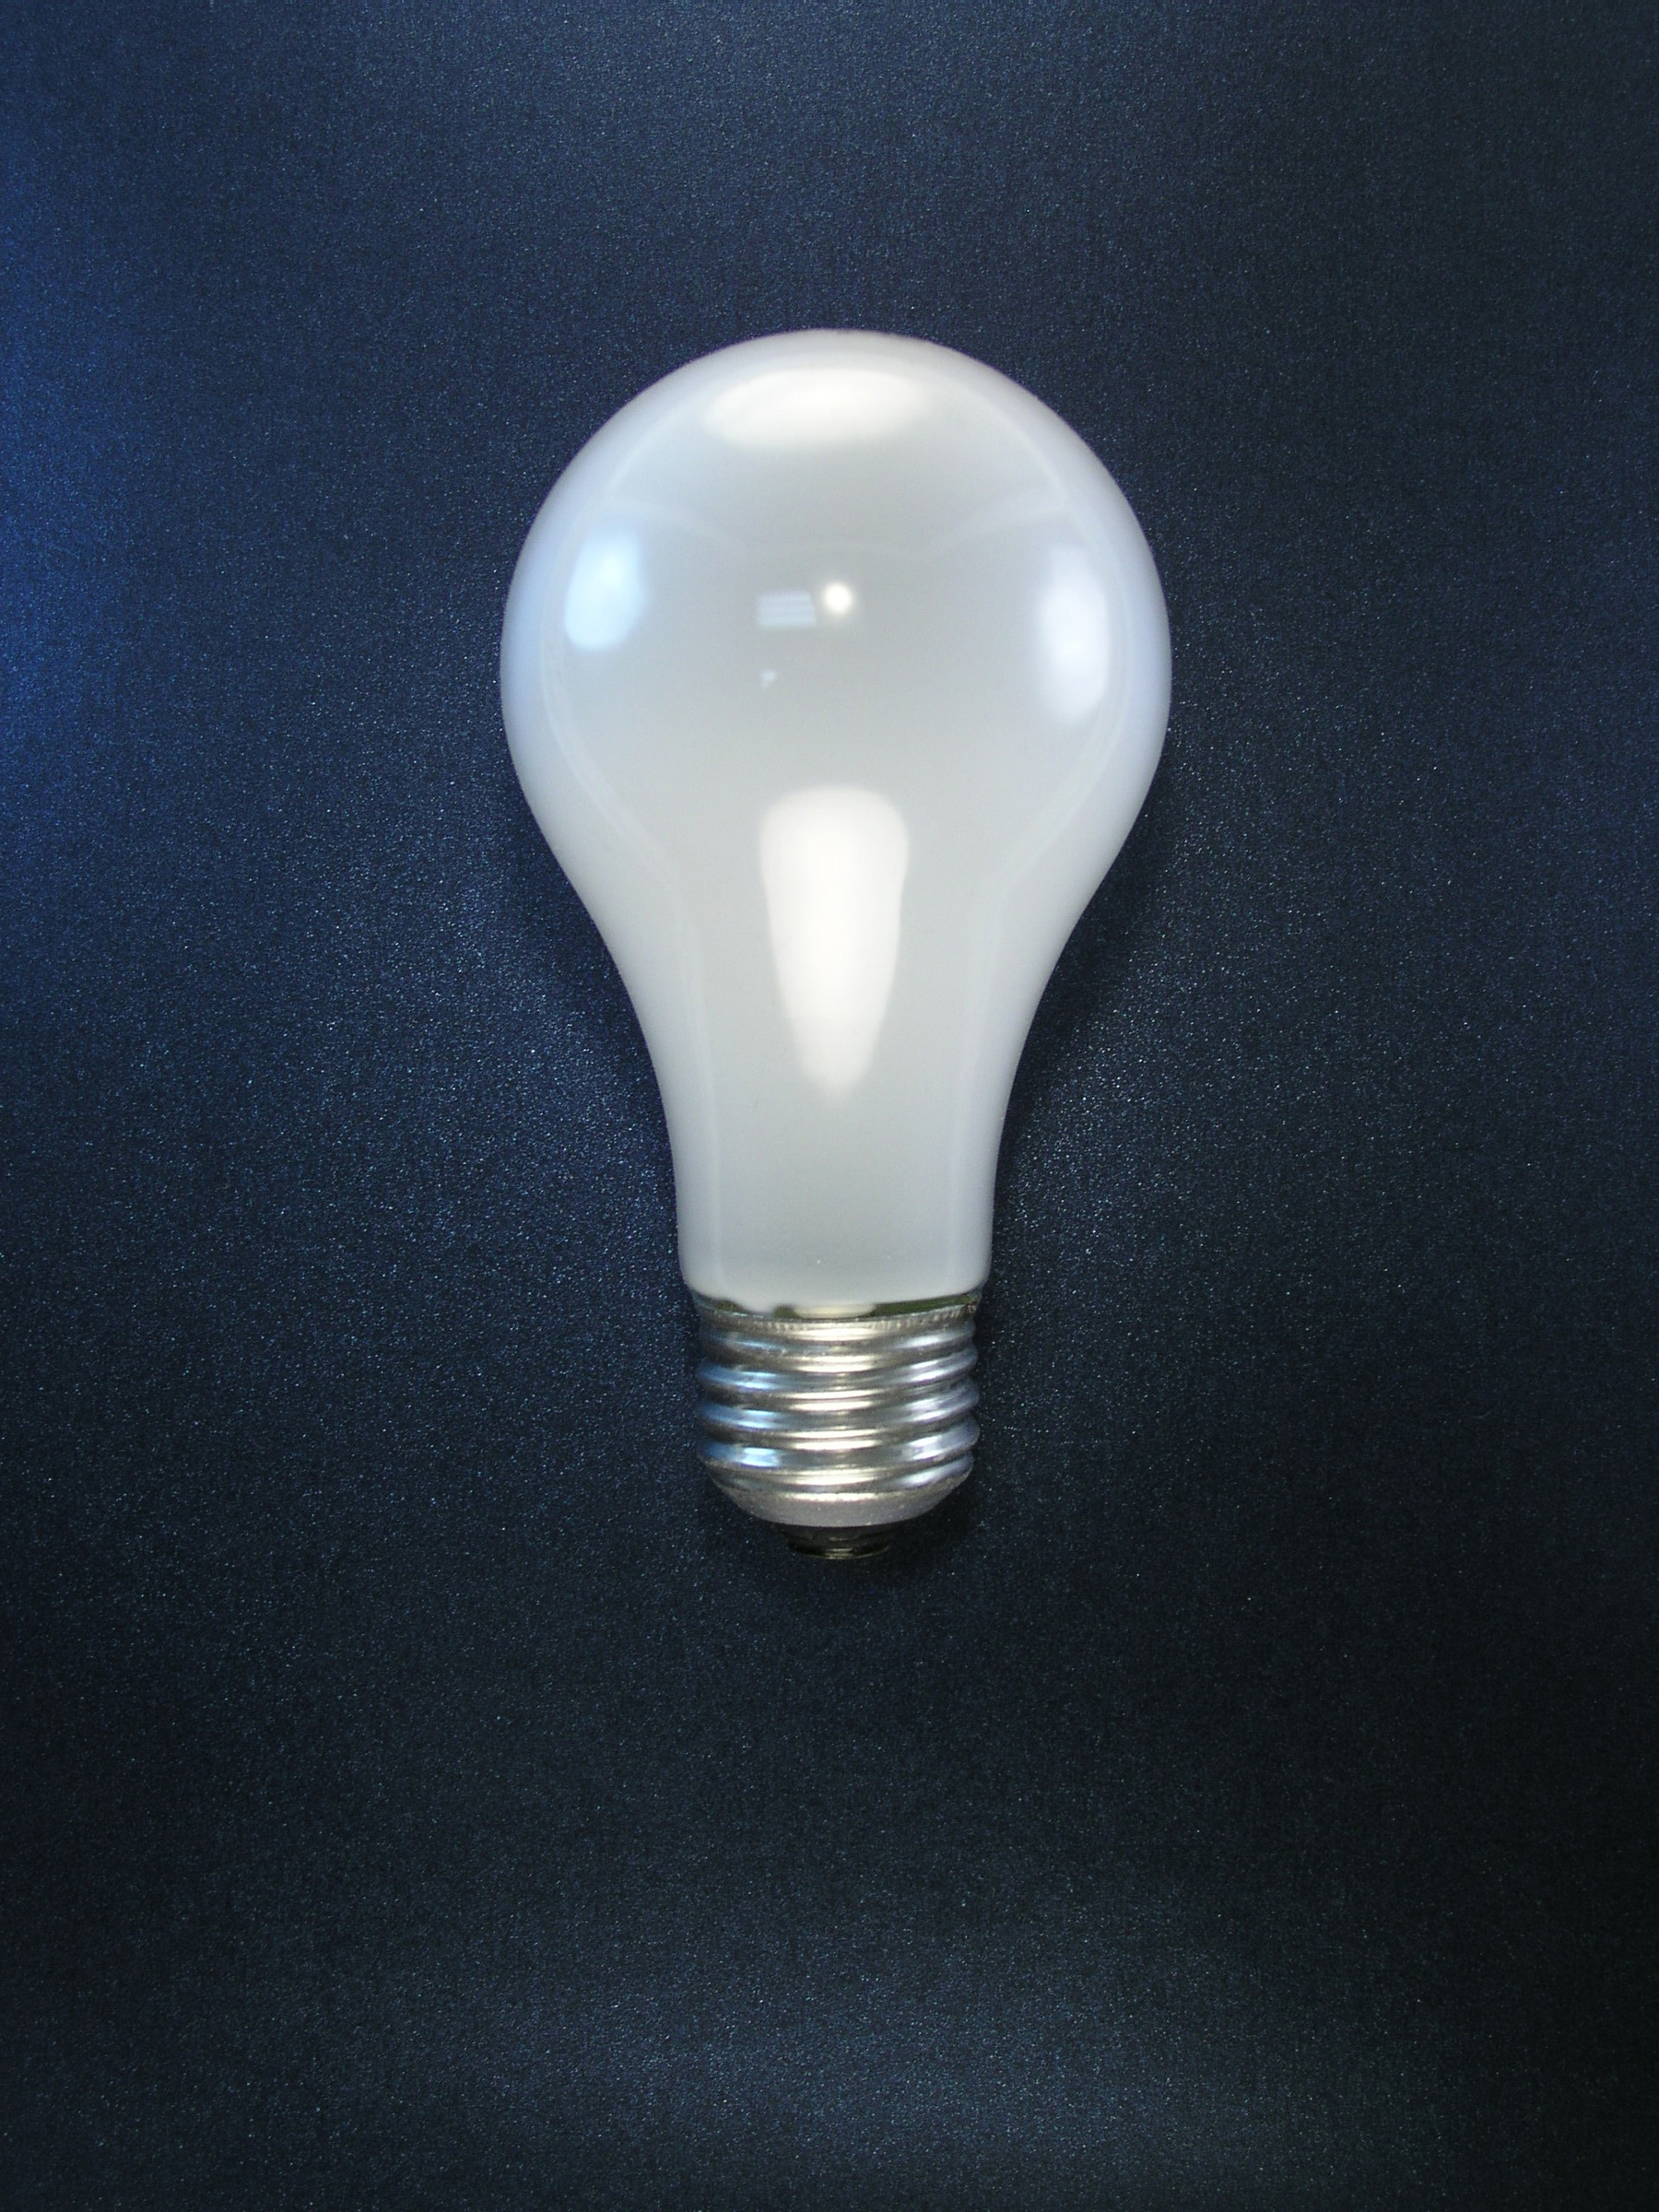 Traditional Incandescent Light Bulbs Phased Out